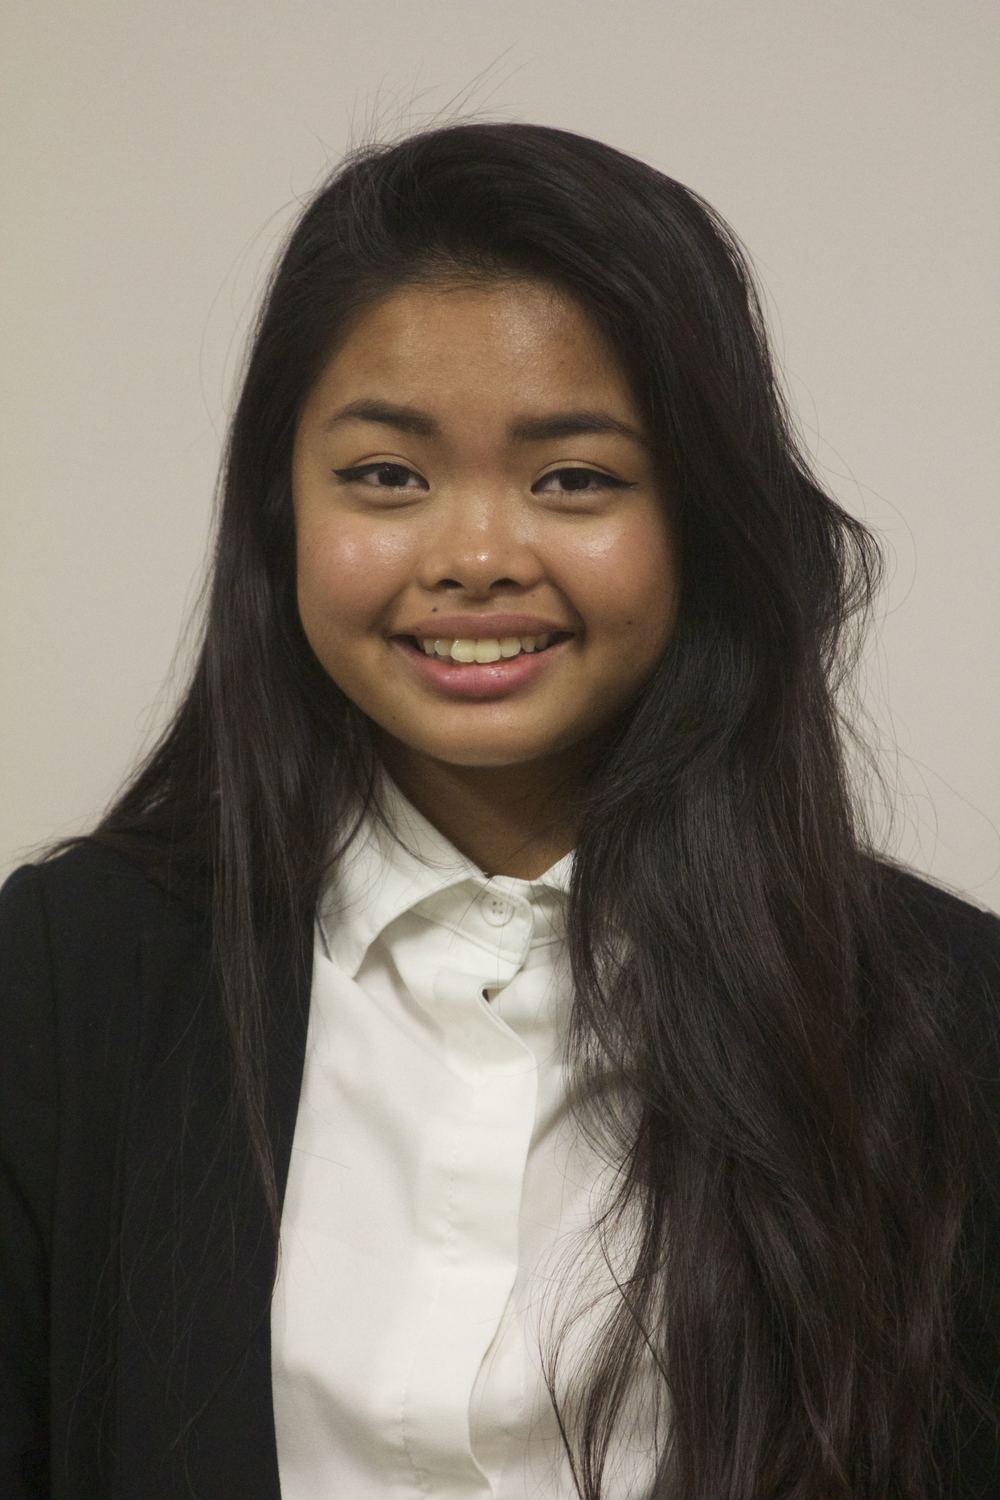 """""""CTL has given me values and ethics from which to lead by, therefore strengthening my leadership skills."""" - Eunica Escalante, CTL Class of 2015"""